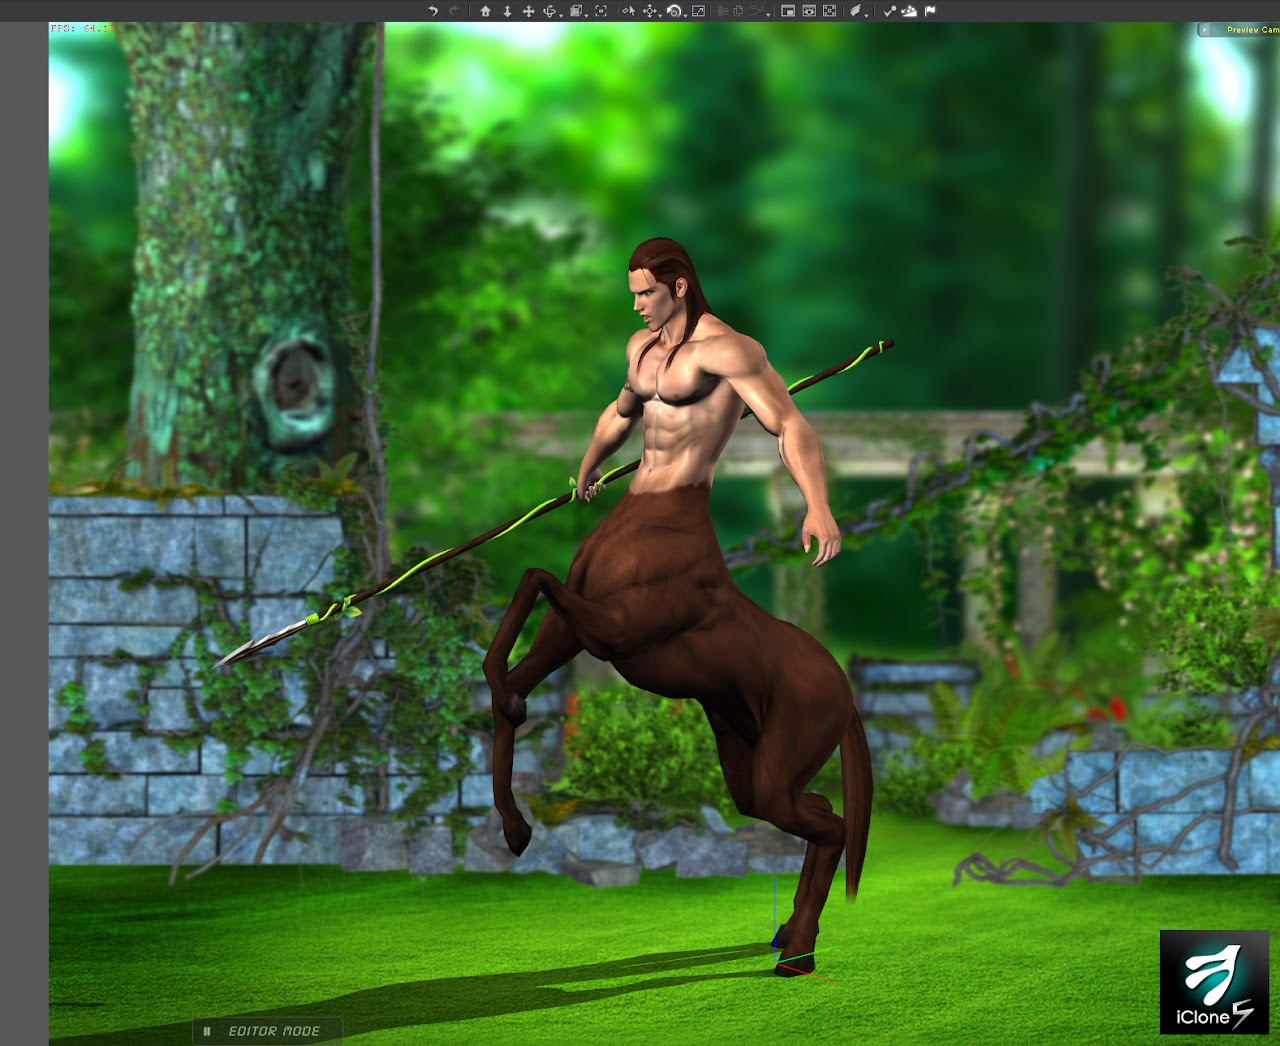 [3dFoin] new Centaur and awesome sale - 60% off!!!! 11